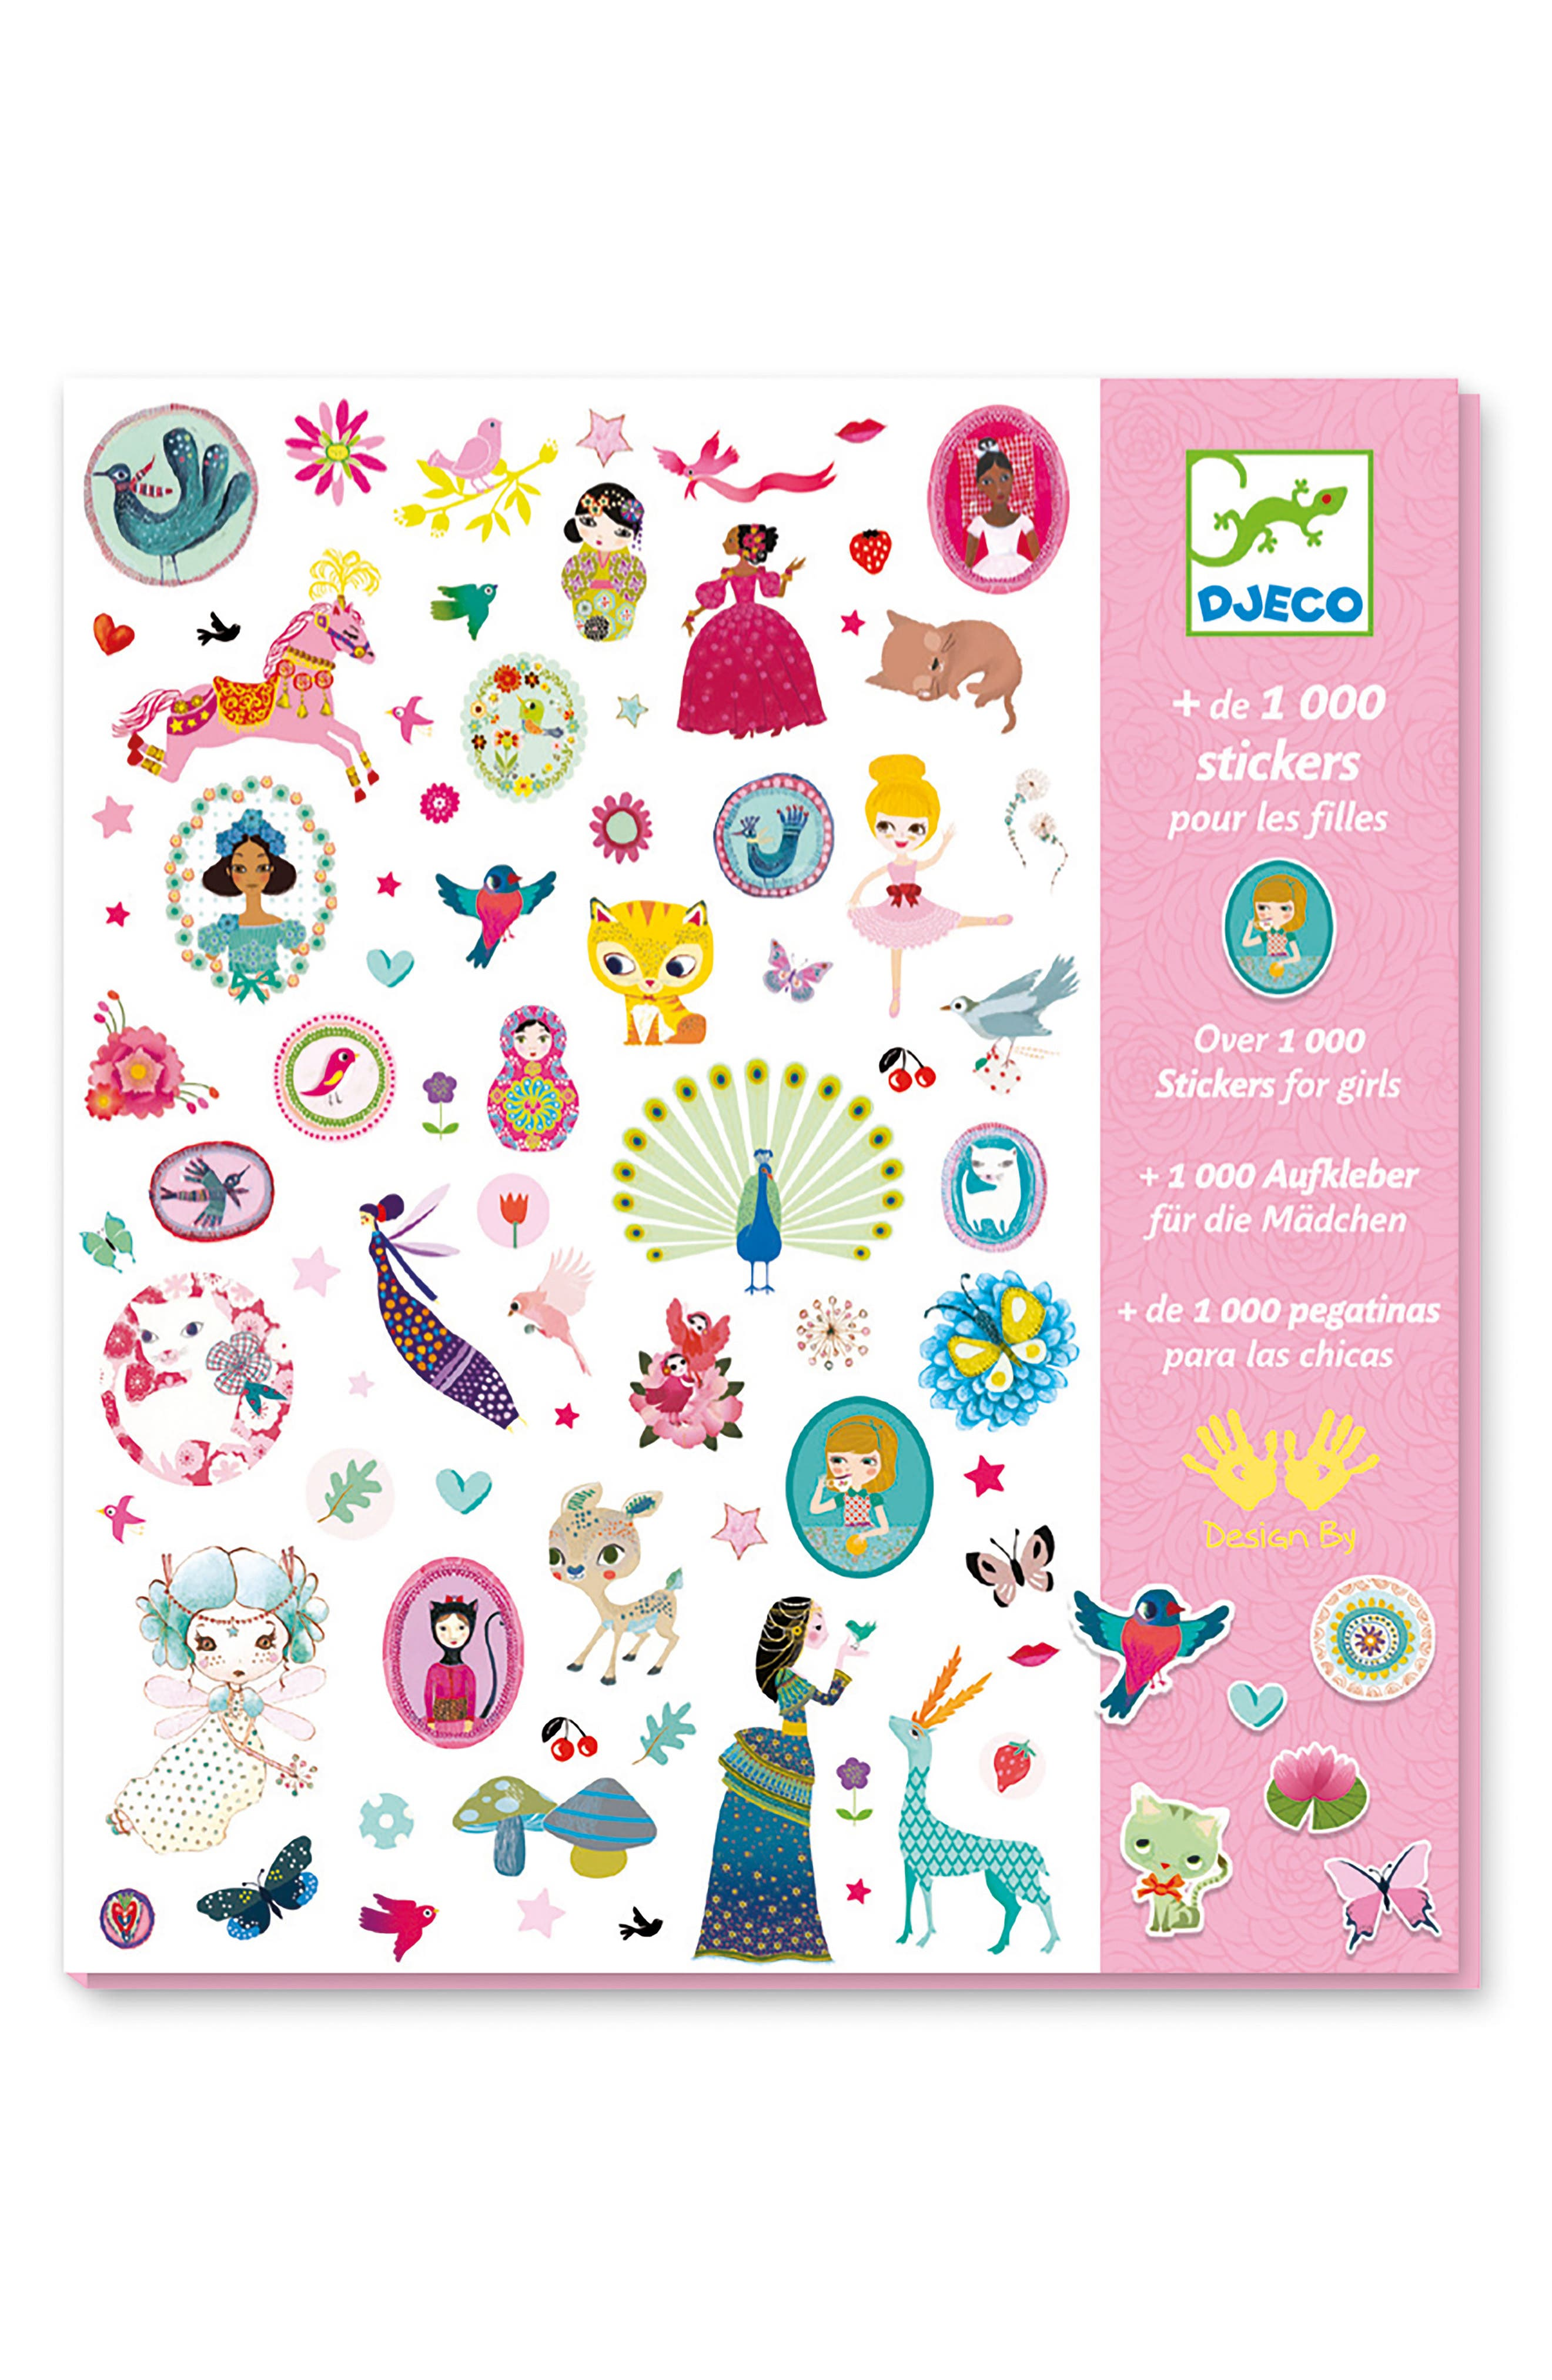 Over 1,000 Stickers for Girls Sticker Collection,                             Alternate thumbnail 3, color,                             100